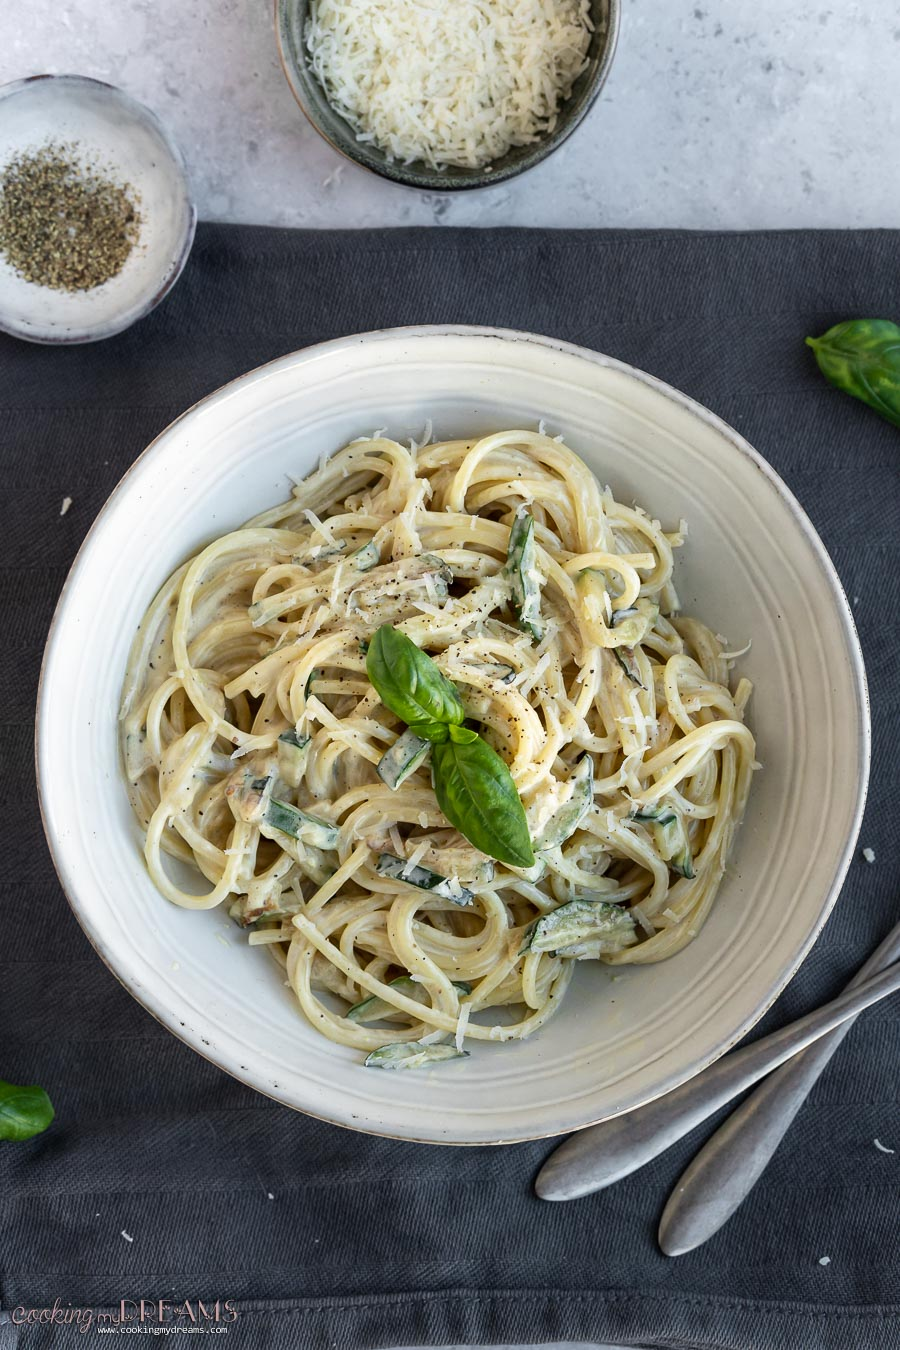 plate with creamy spaghetti with zucchini and basil leaves on top